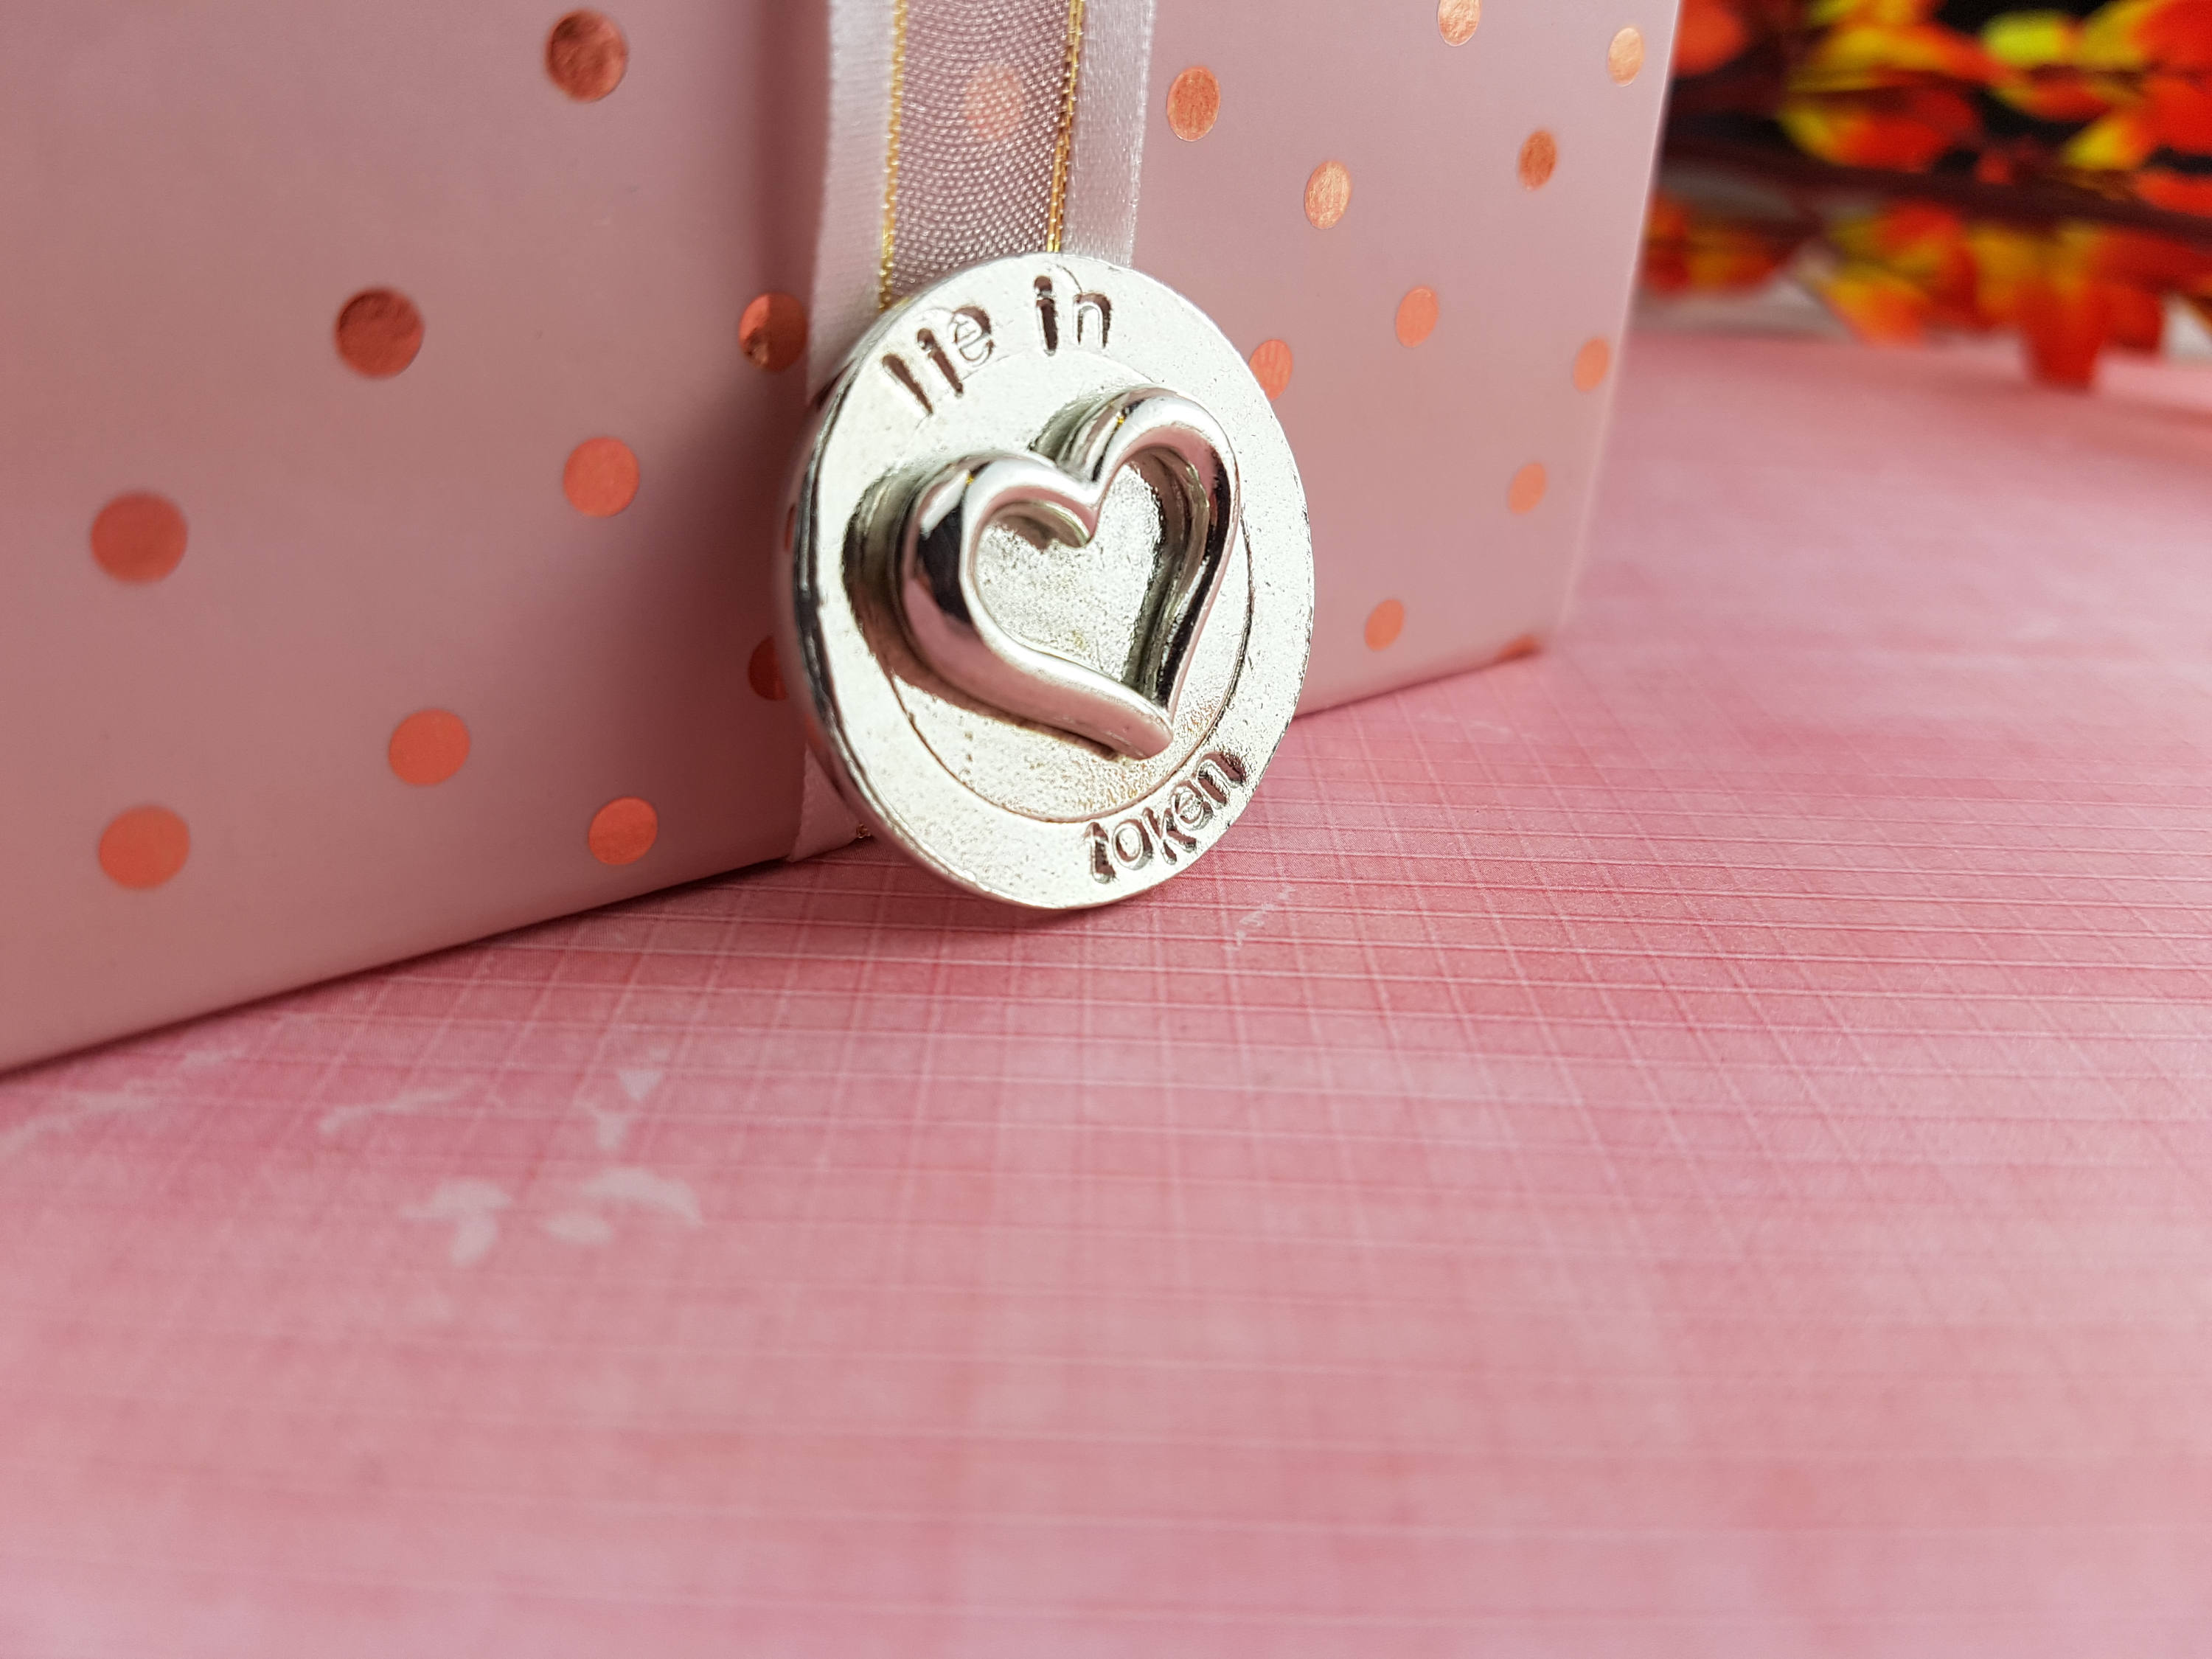 A Lie In Love Token Gift for Wife Girlfriend Husband